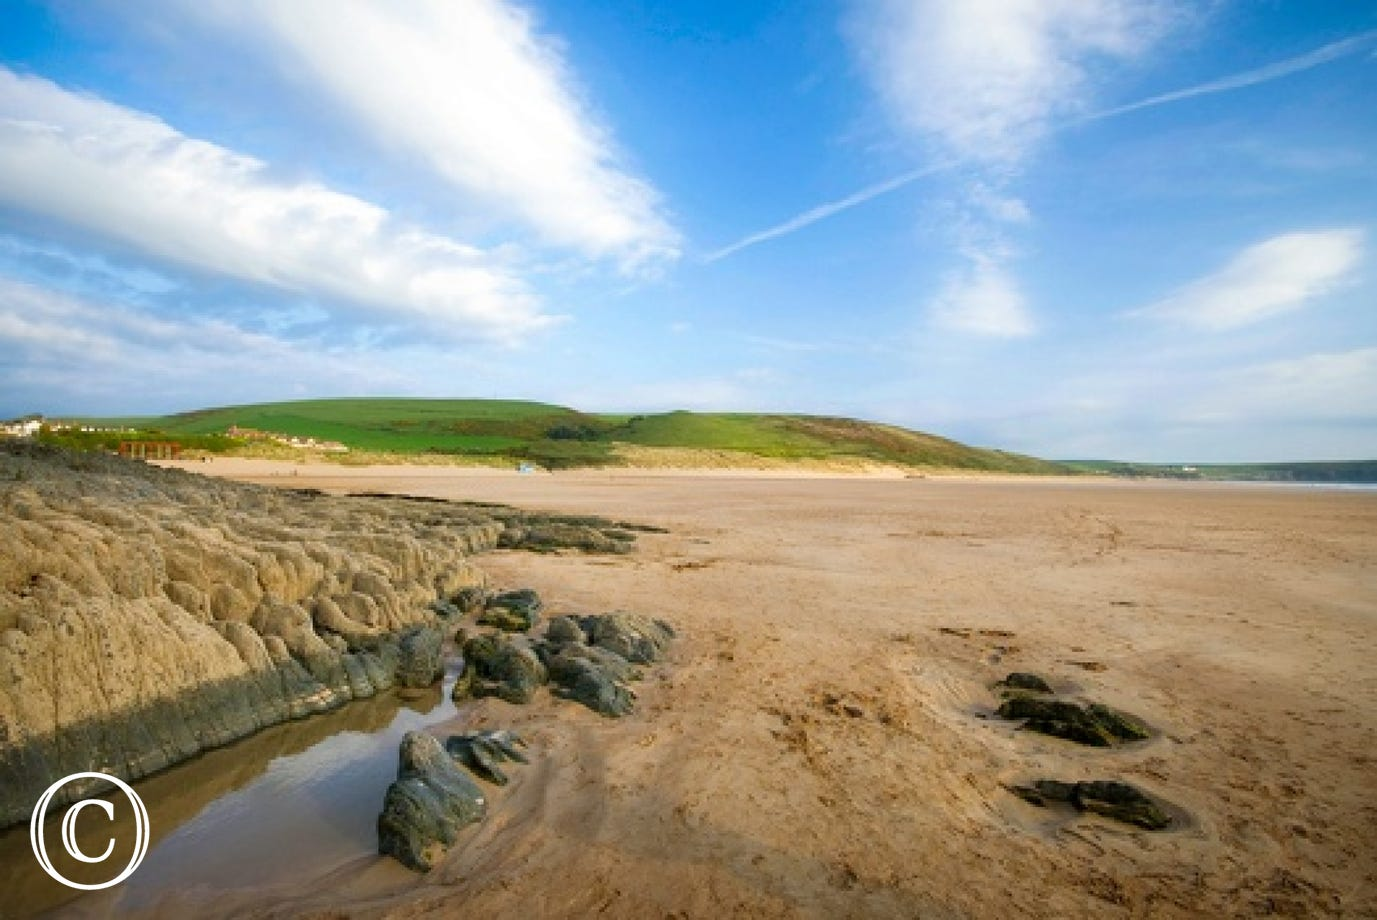 The award winning beach of Woolacombe is just a few minutes walk away